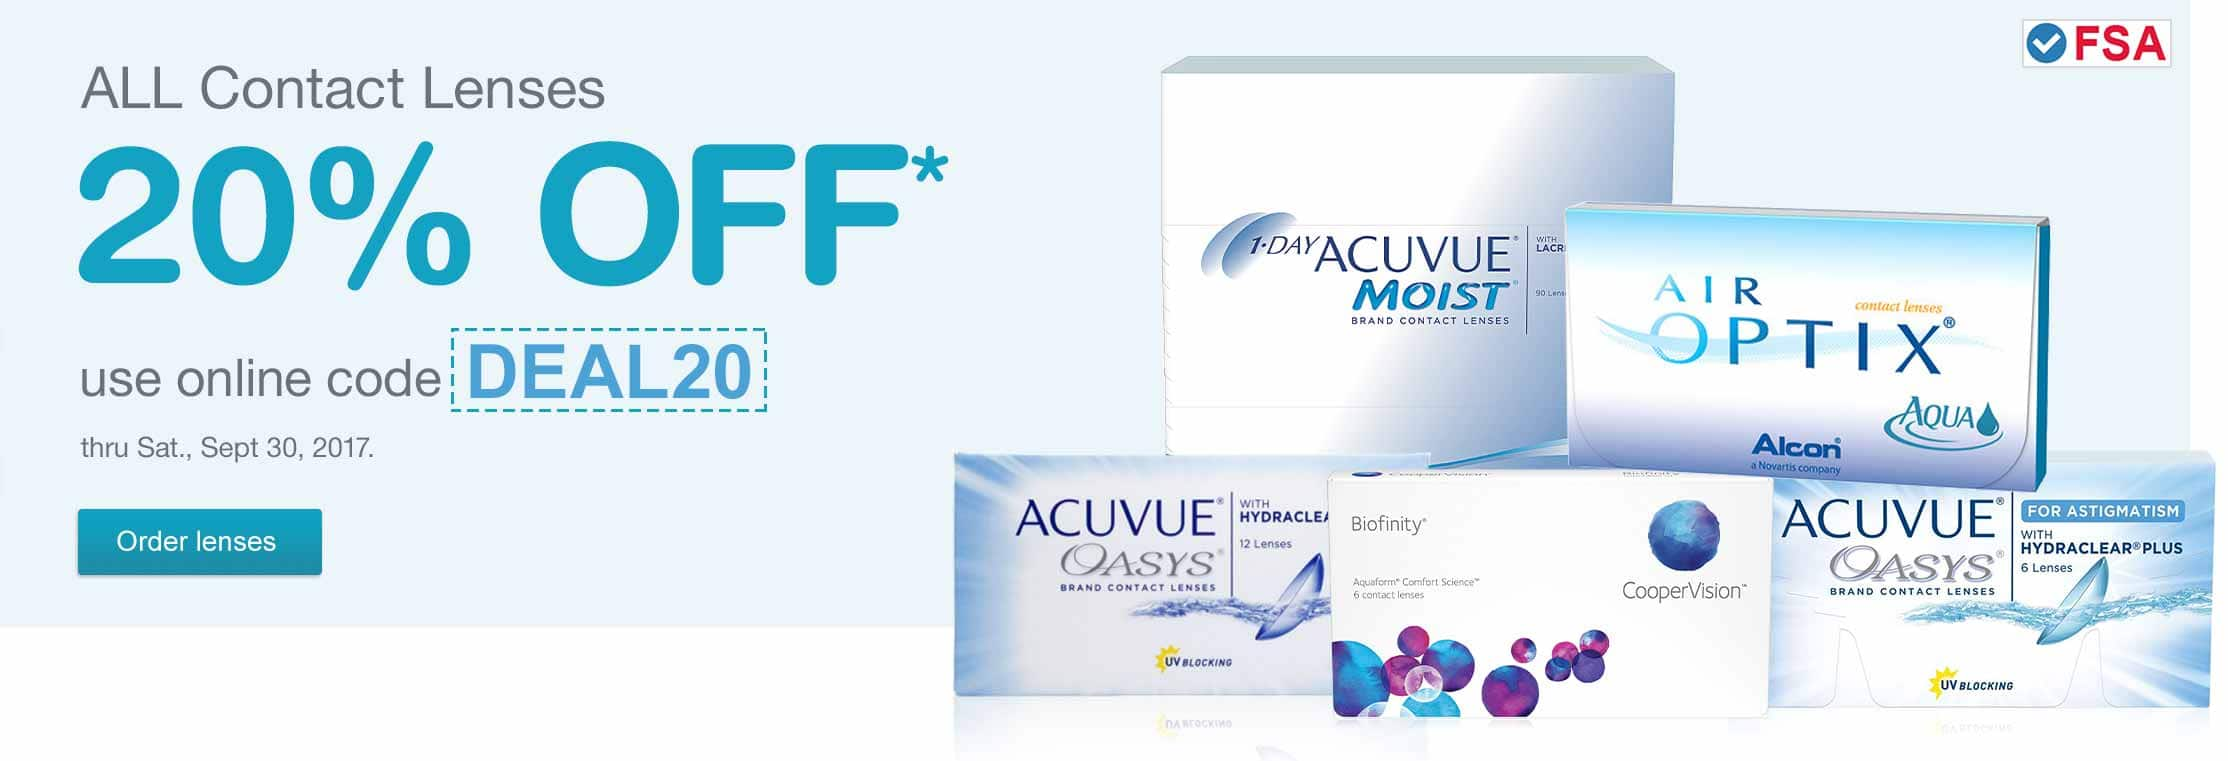 Walgreens Coupon: Contact Lenses 30% Off + $10 Off $50 w/ Visa Checkout + FS